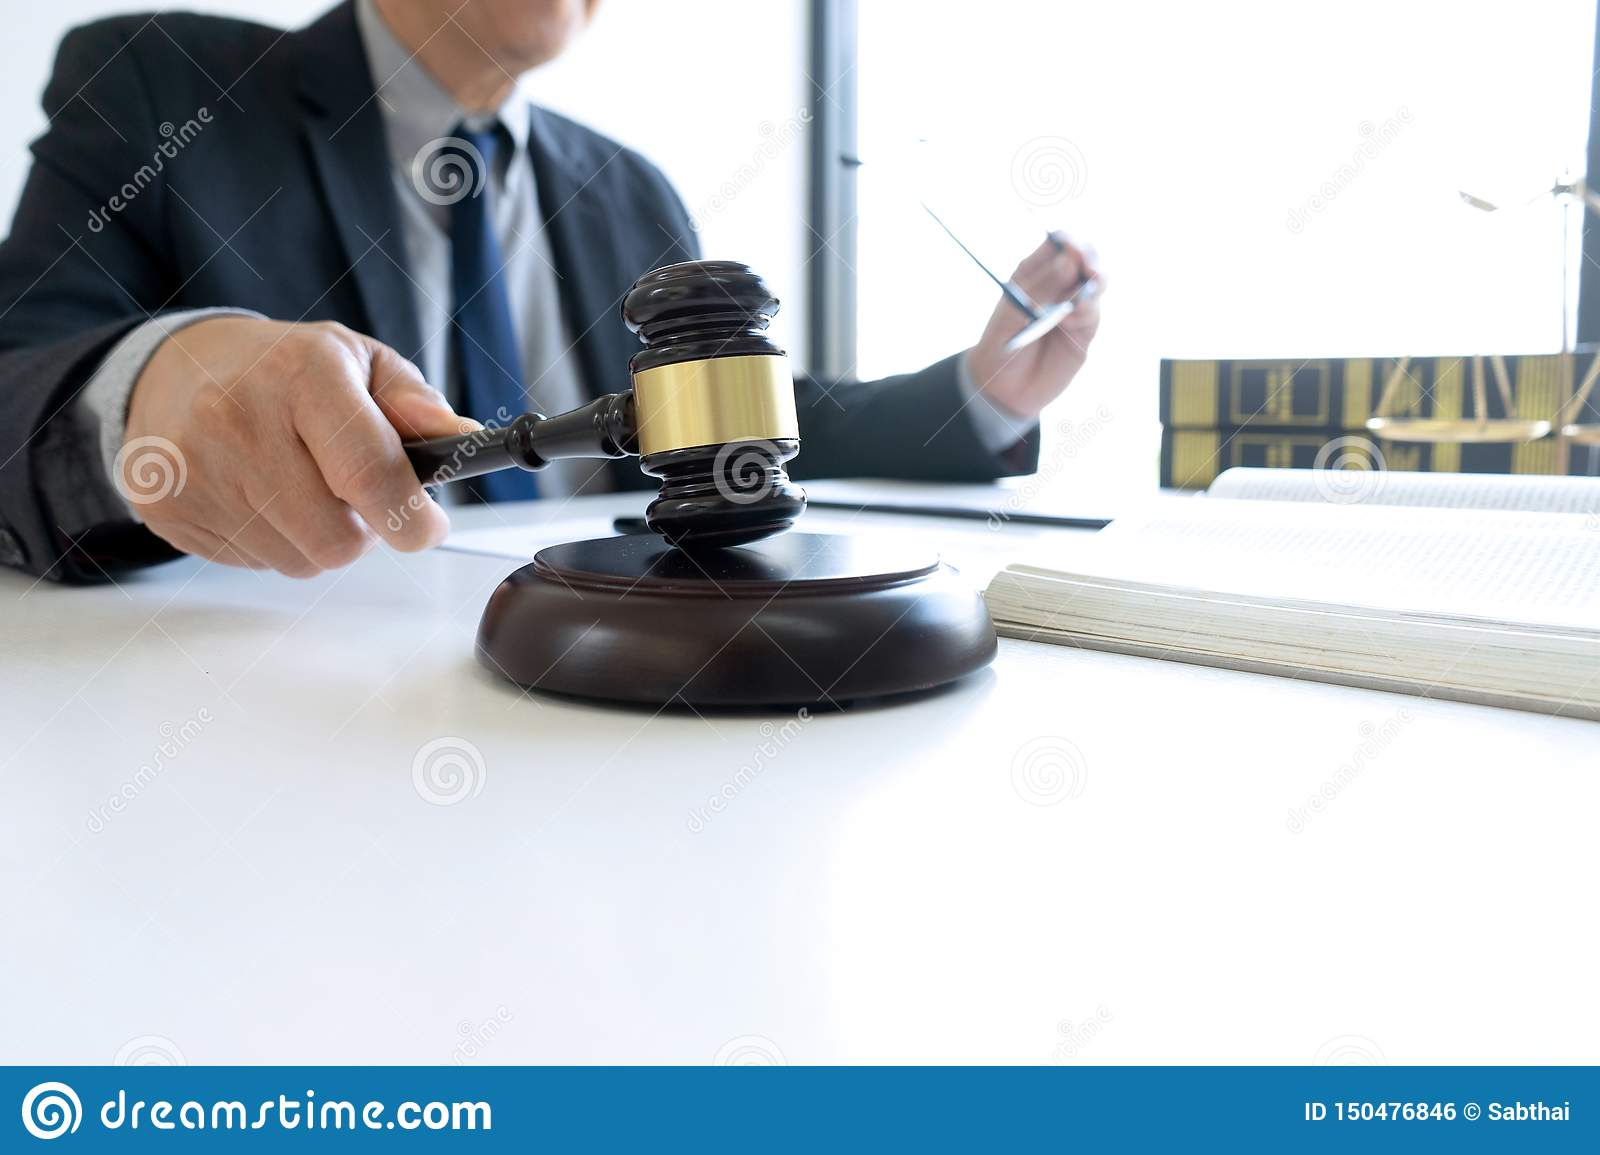 In the office of Judge or lawyer